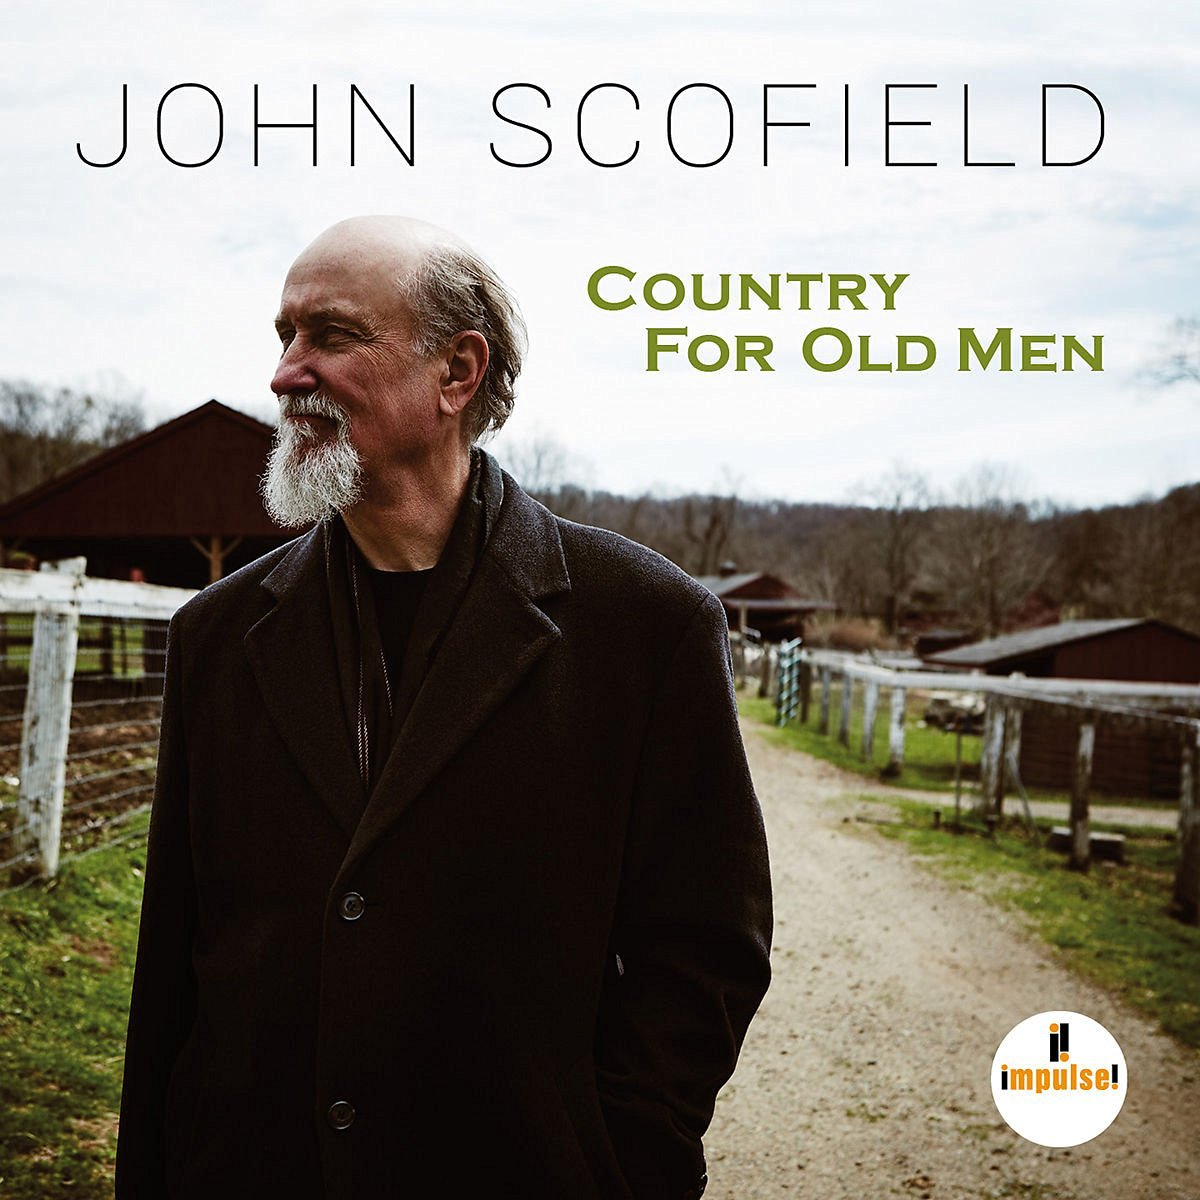 JOHN SCOFIELD - Country For Old Men cover